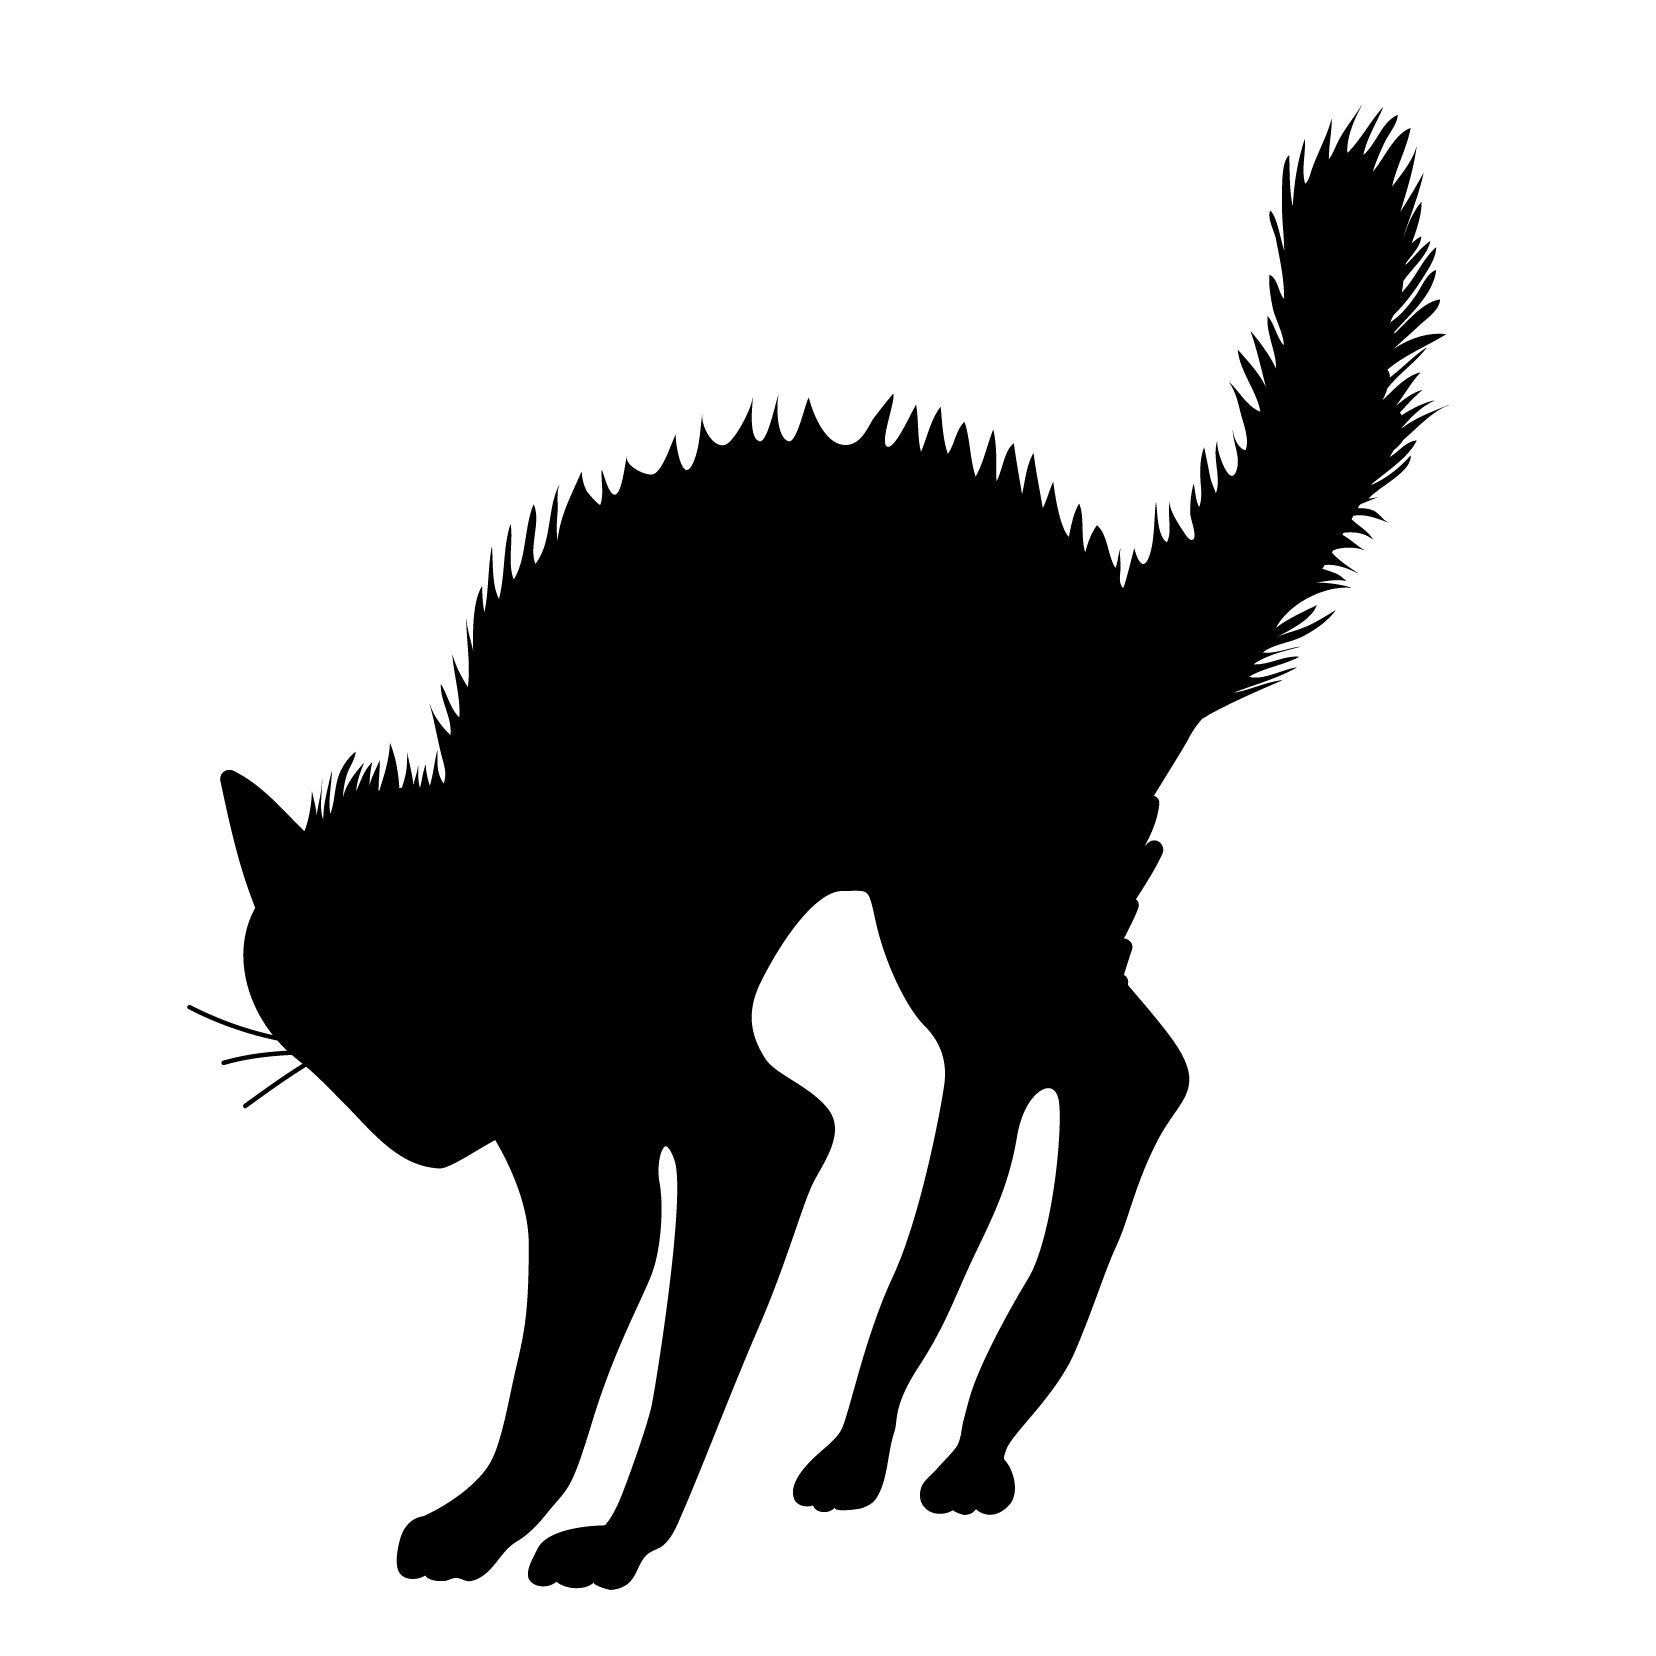 Angry Arched Scary Halloween Black Cat Silhouette Vinyl Wall Art Decal For Homes Offices Kids Rooms Nurseries Schools High Schools Colleges Universitie With Images Halloween Silhouettes Black Cat Halloween Halloween Cat